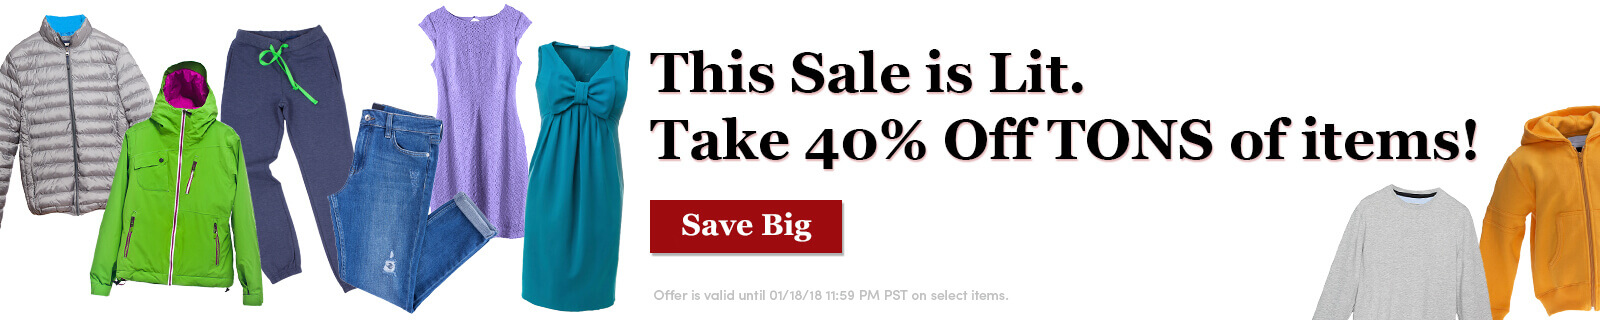 This Sale is Lit. Take 40% Off TONS of items! [Save big]